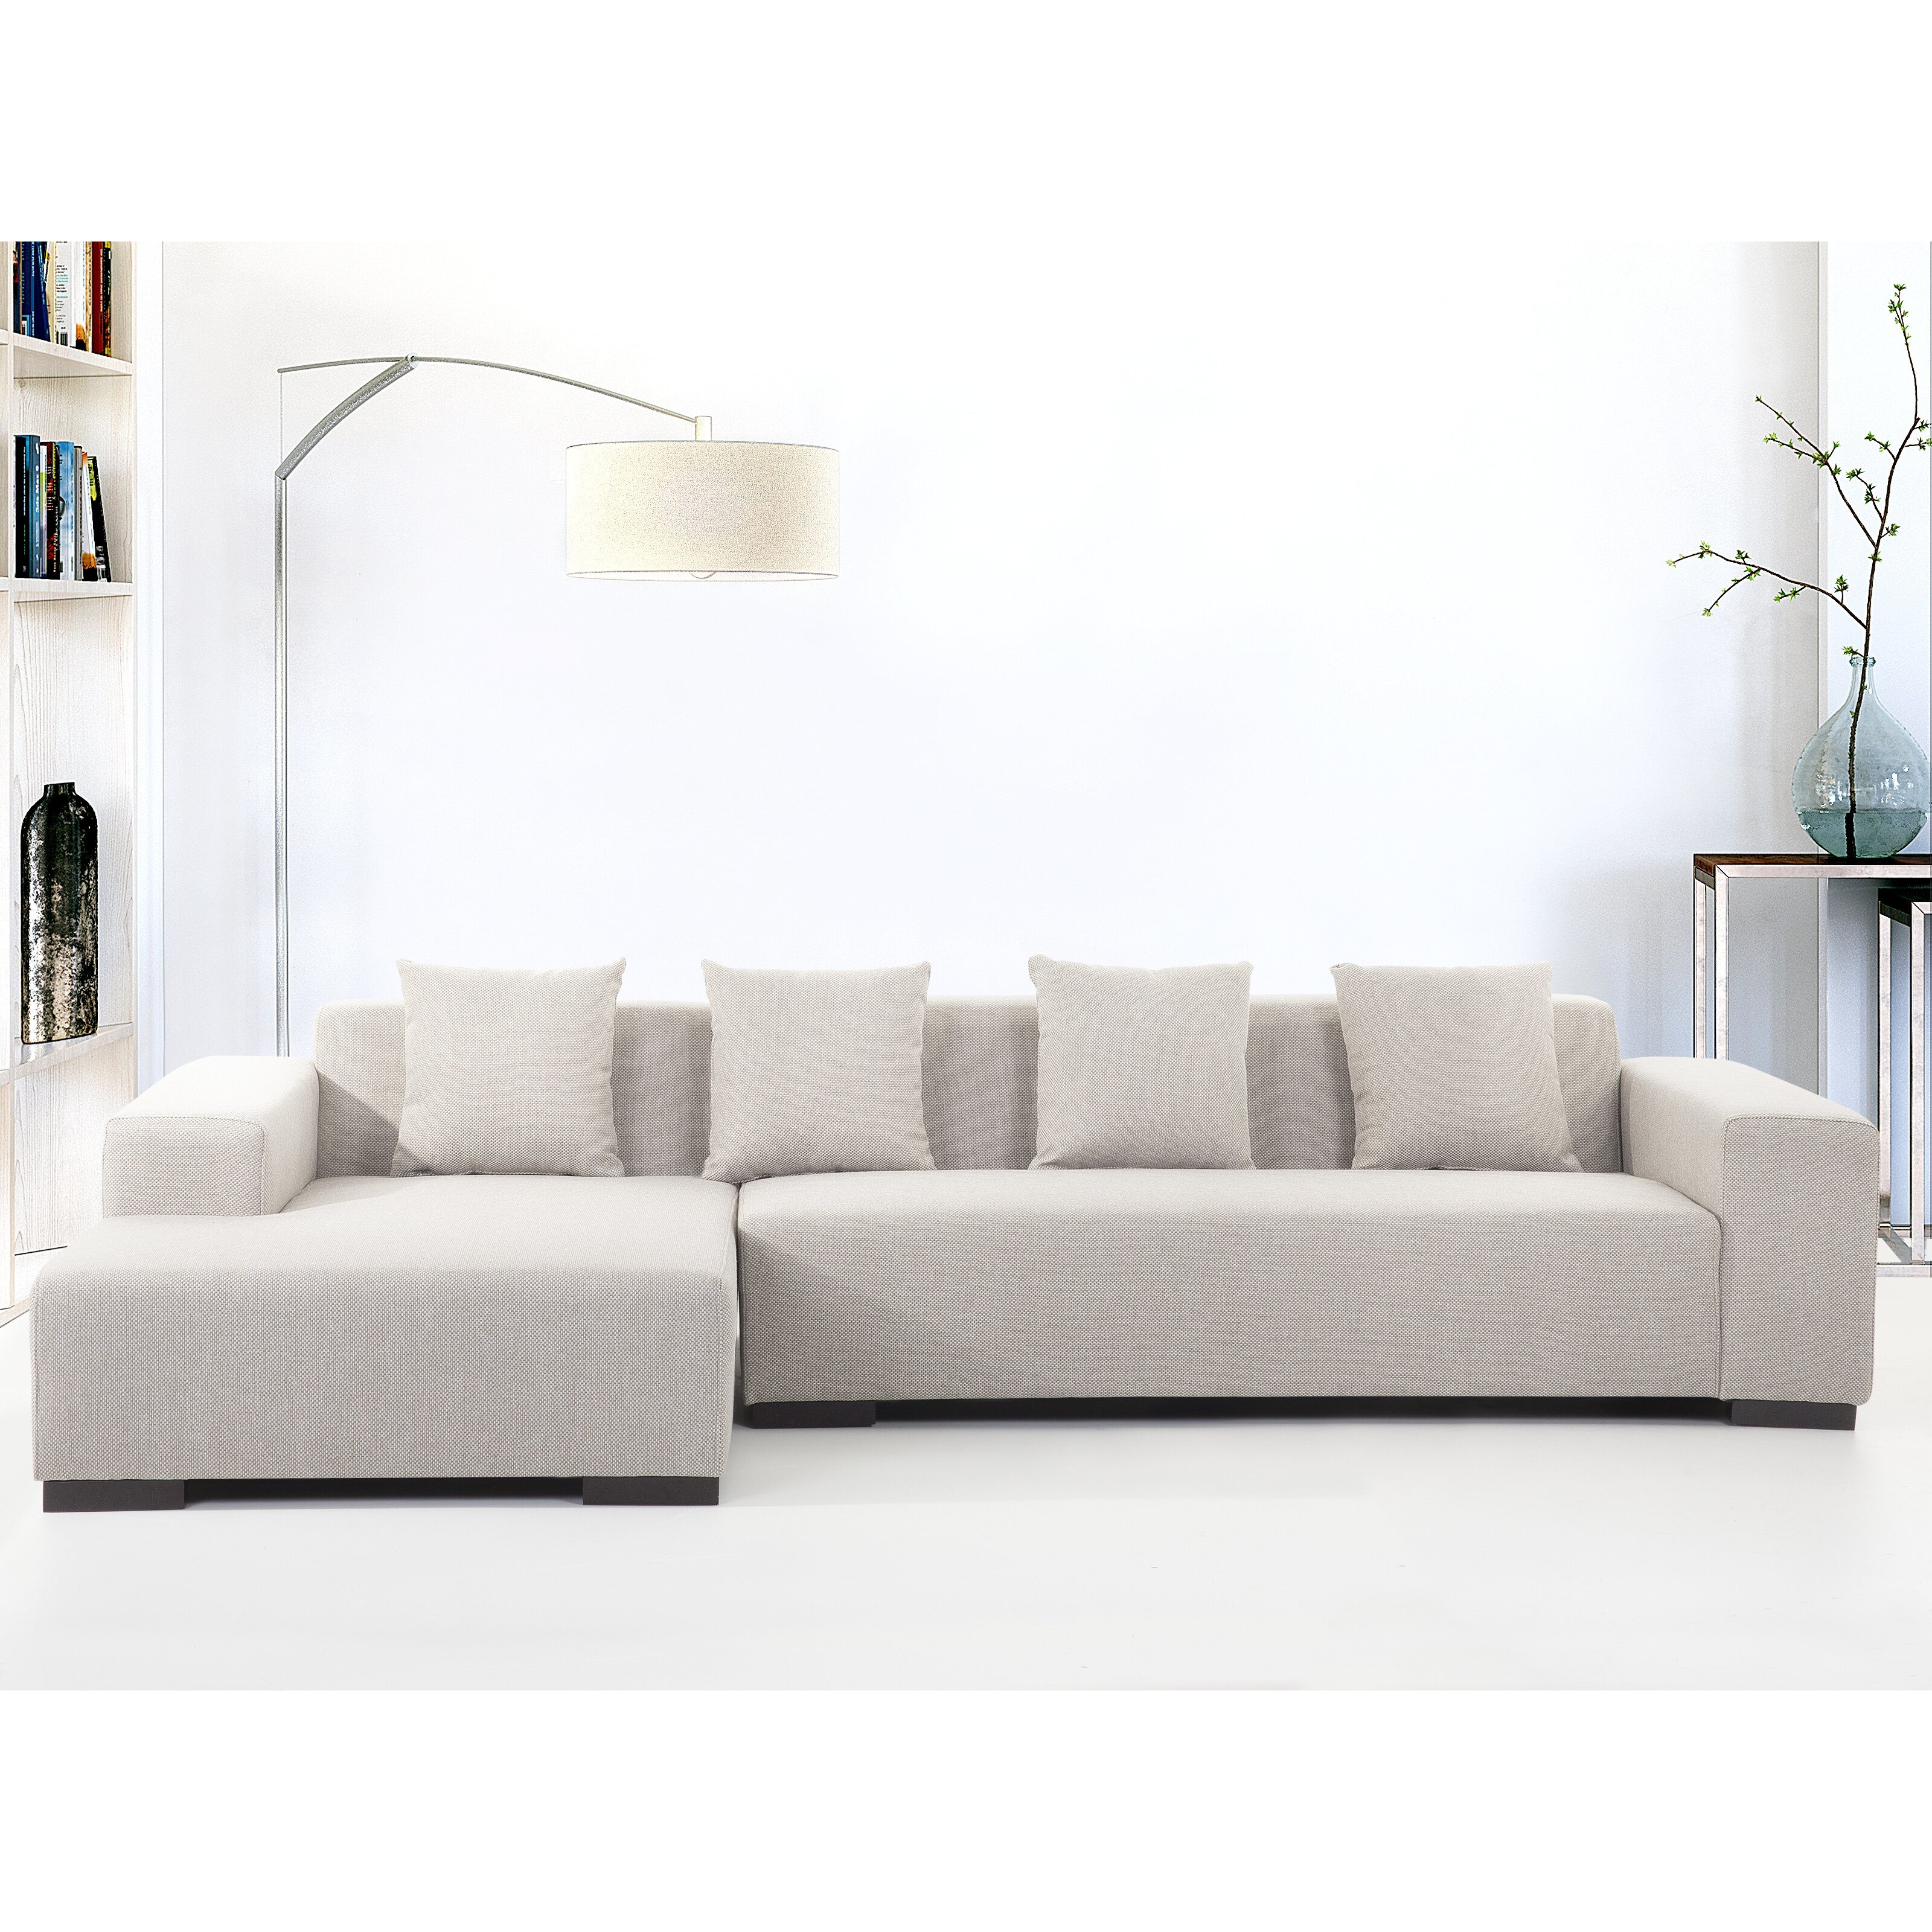 living room furniture sectional sofas beliani sku blni1164. Black Bedroom Furniture Sets. Home Design Ideas